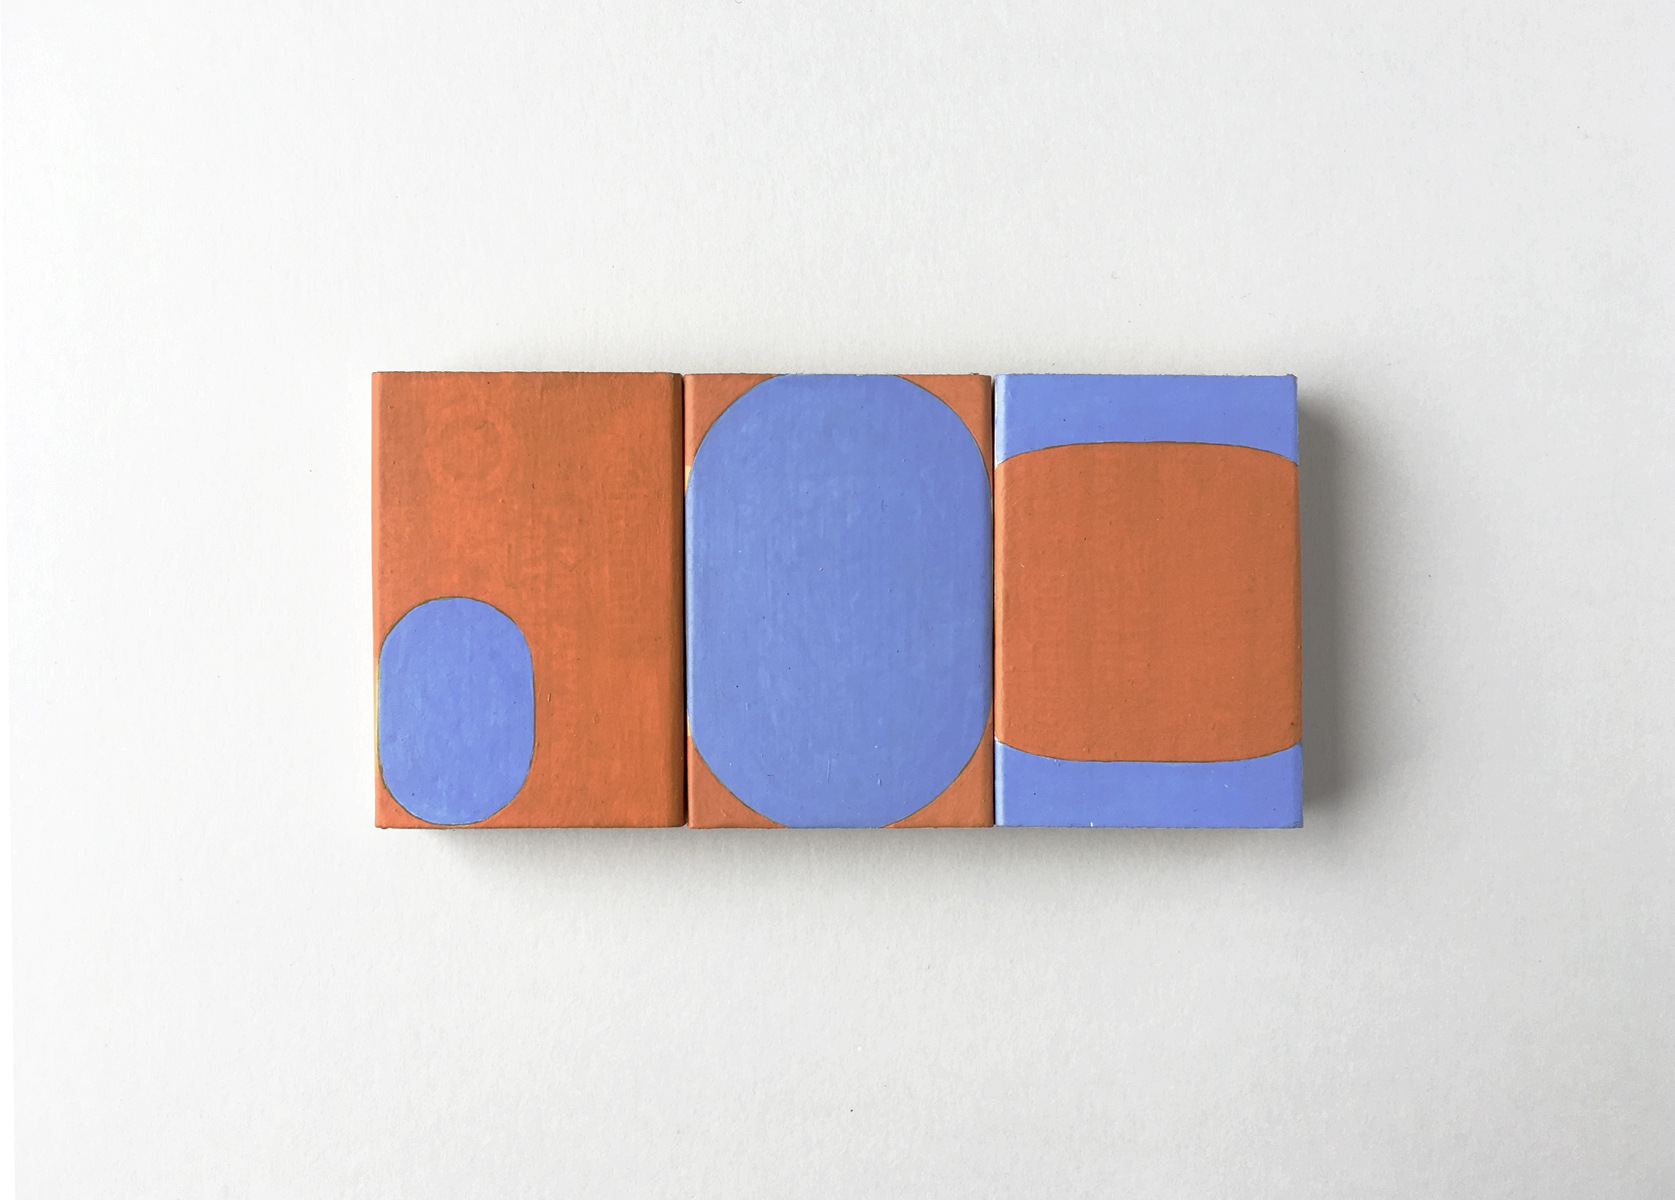 Three small matchboxes in a row with blue and orange ovals painted on them.